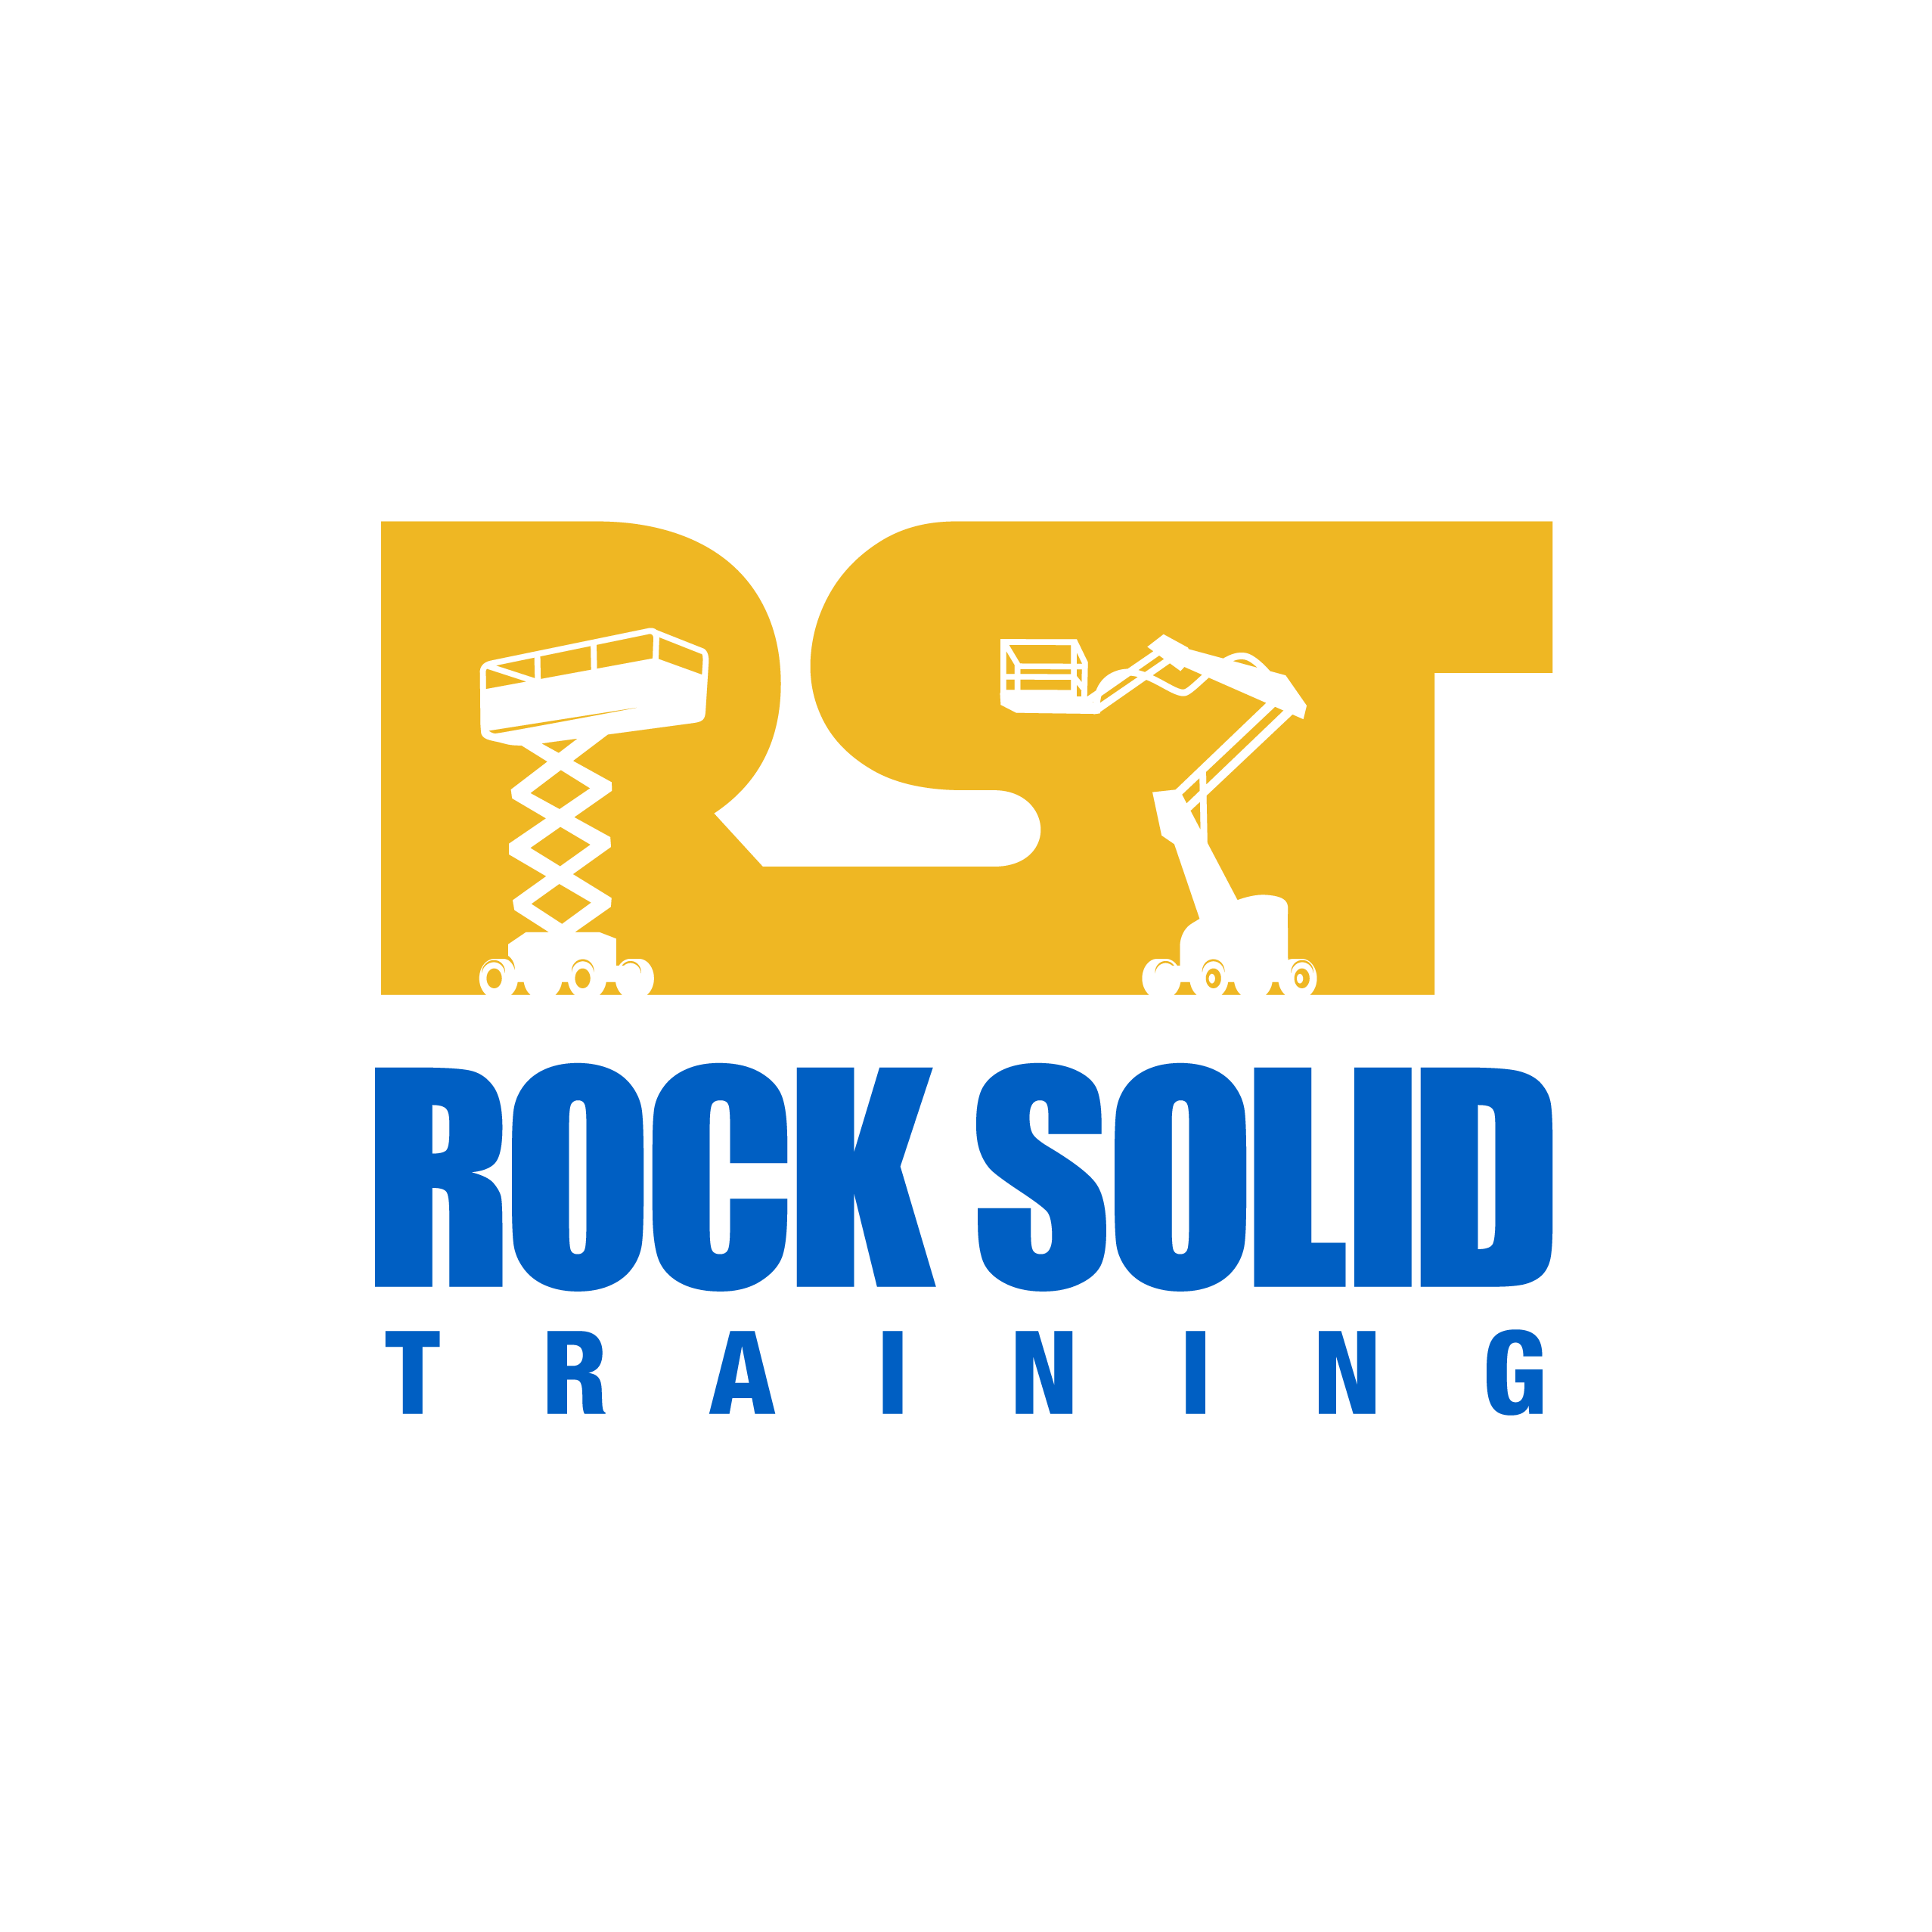 Rock Solid Training needs a manly but sophisticated logo